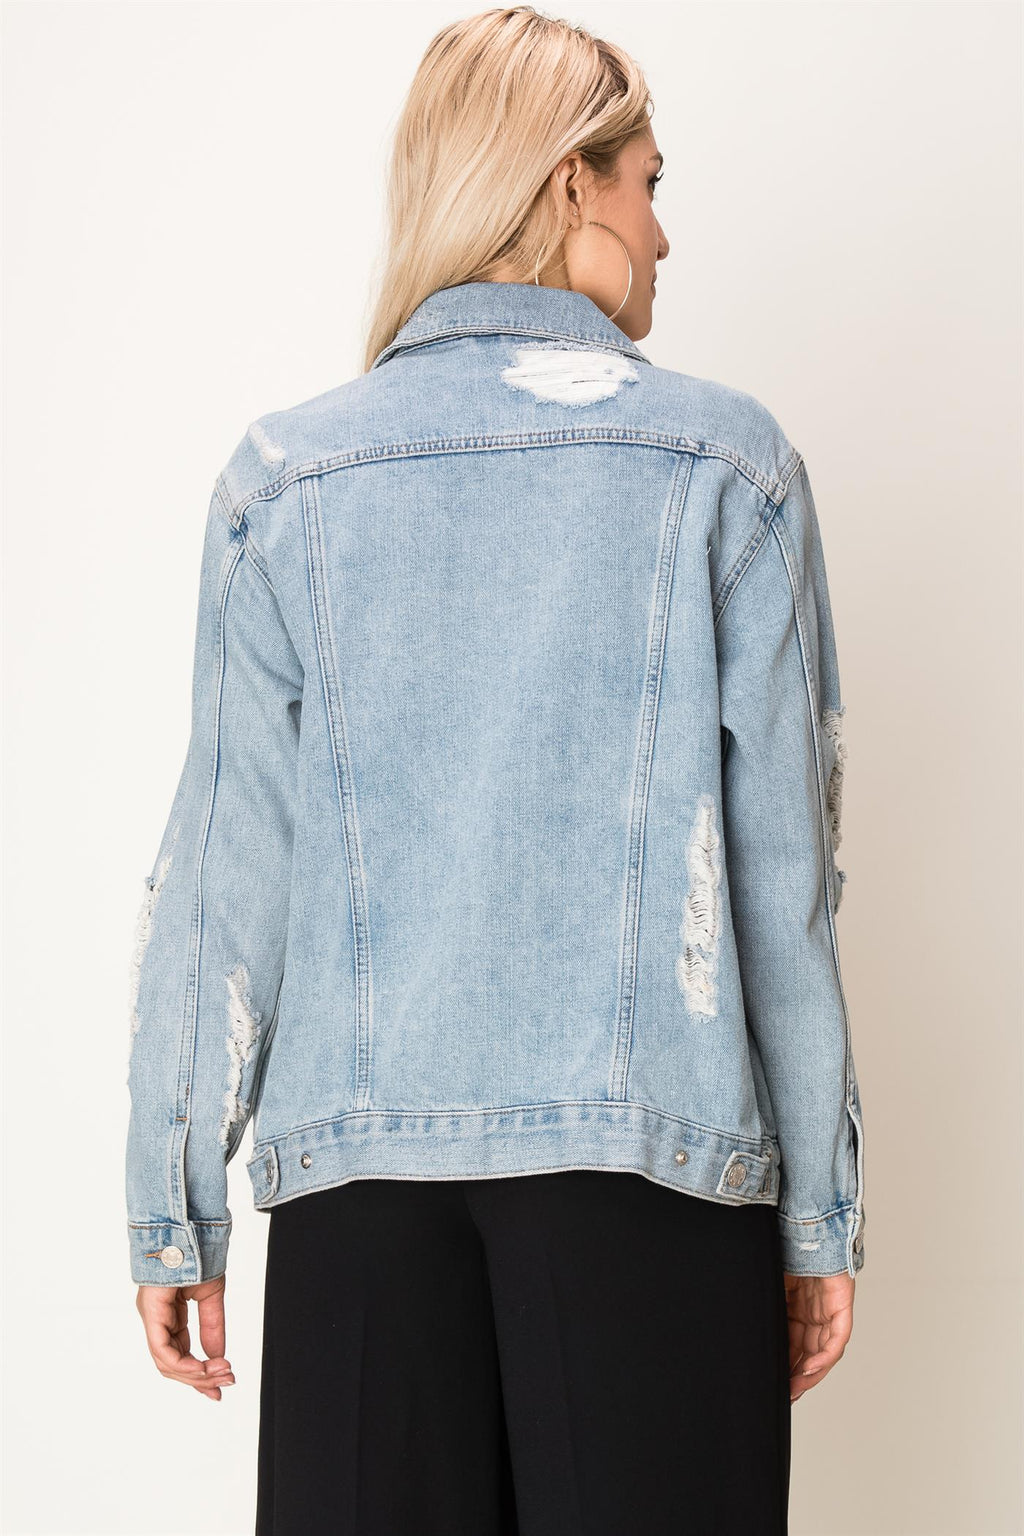 Destroyed Light Wash Denim Jacket